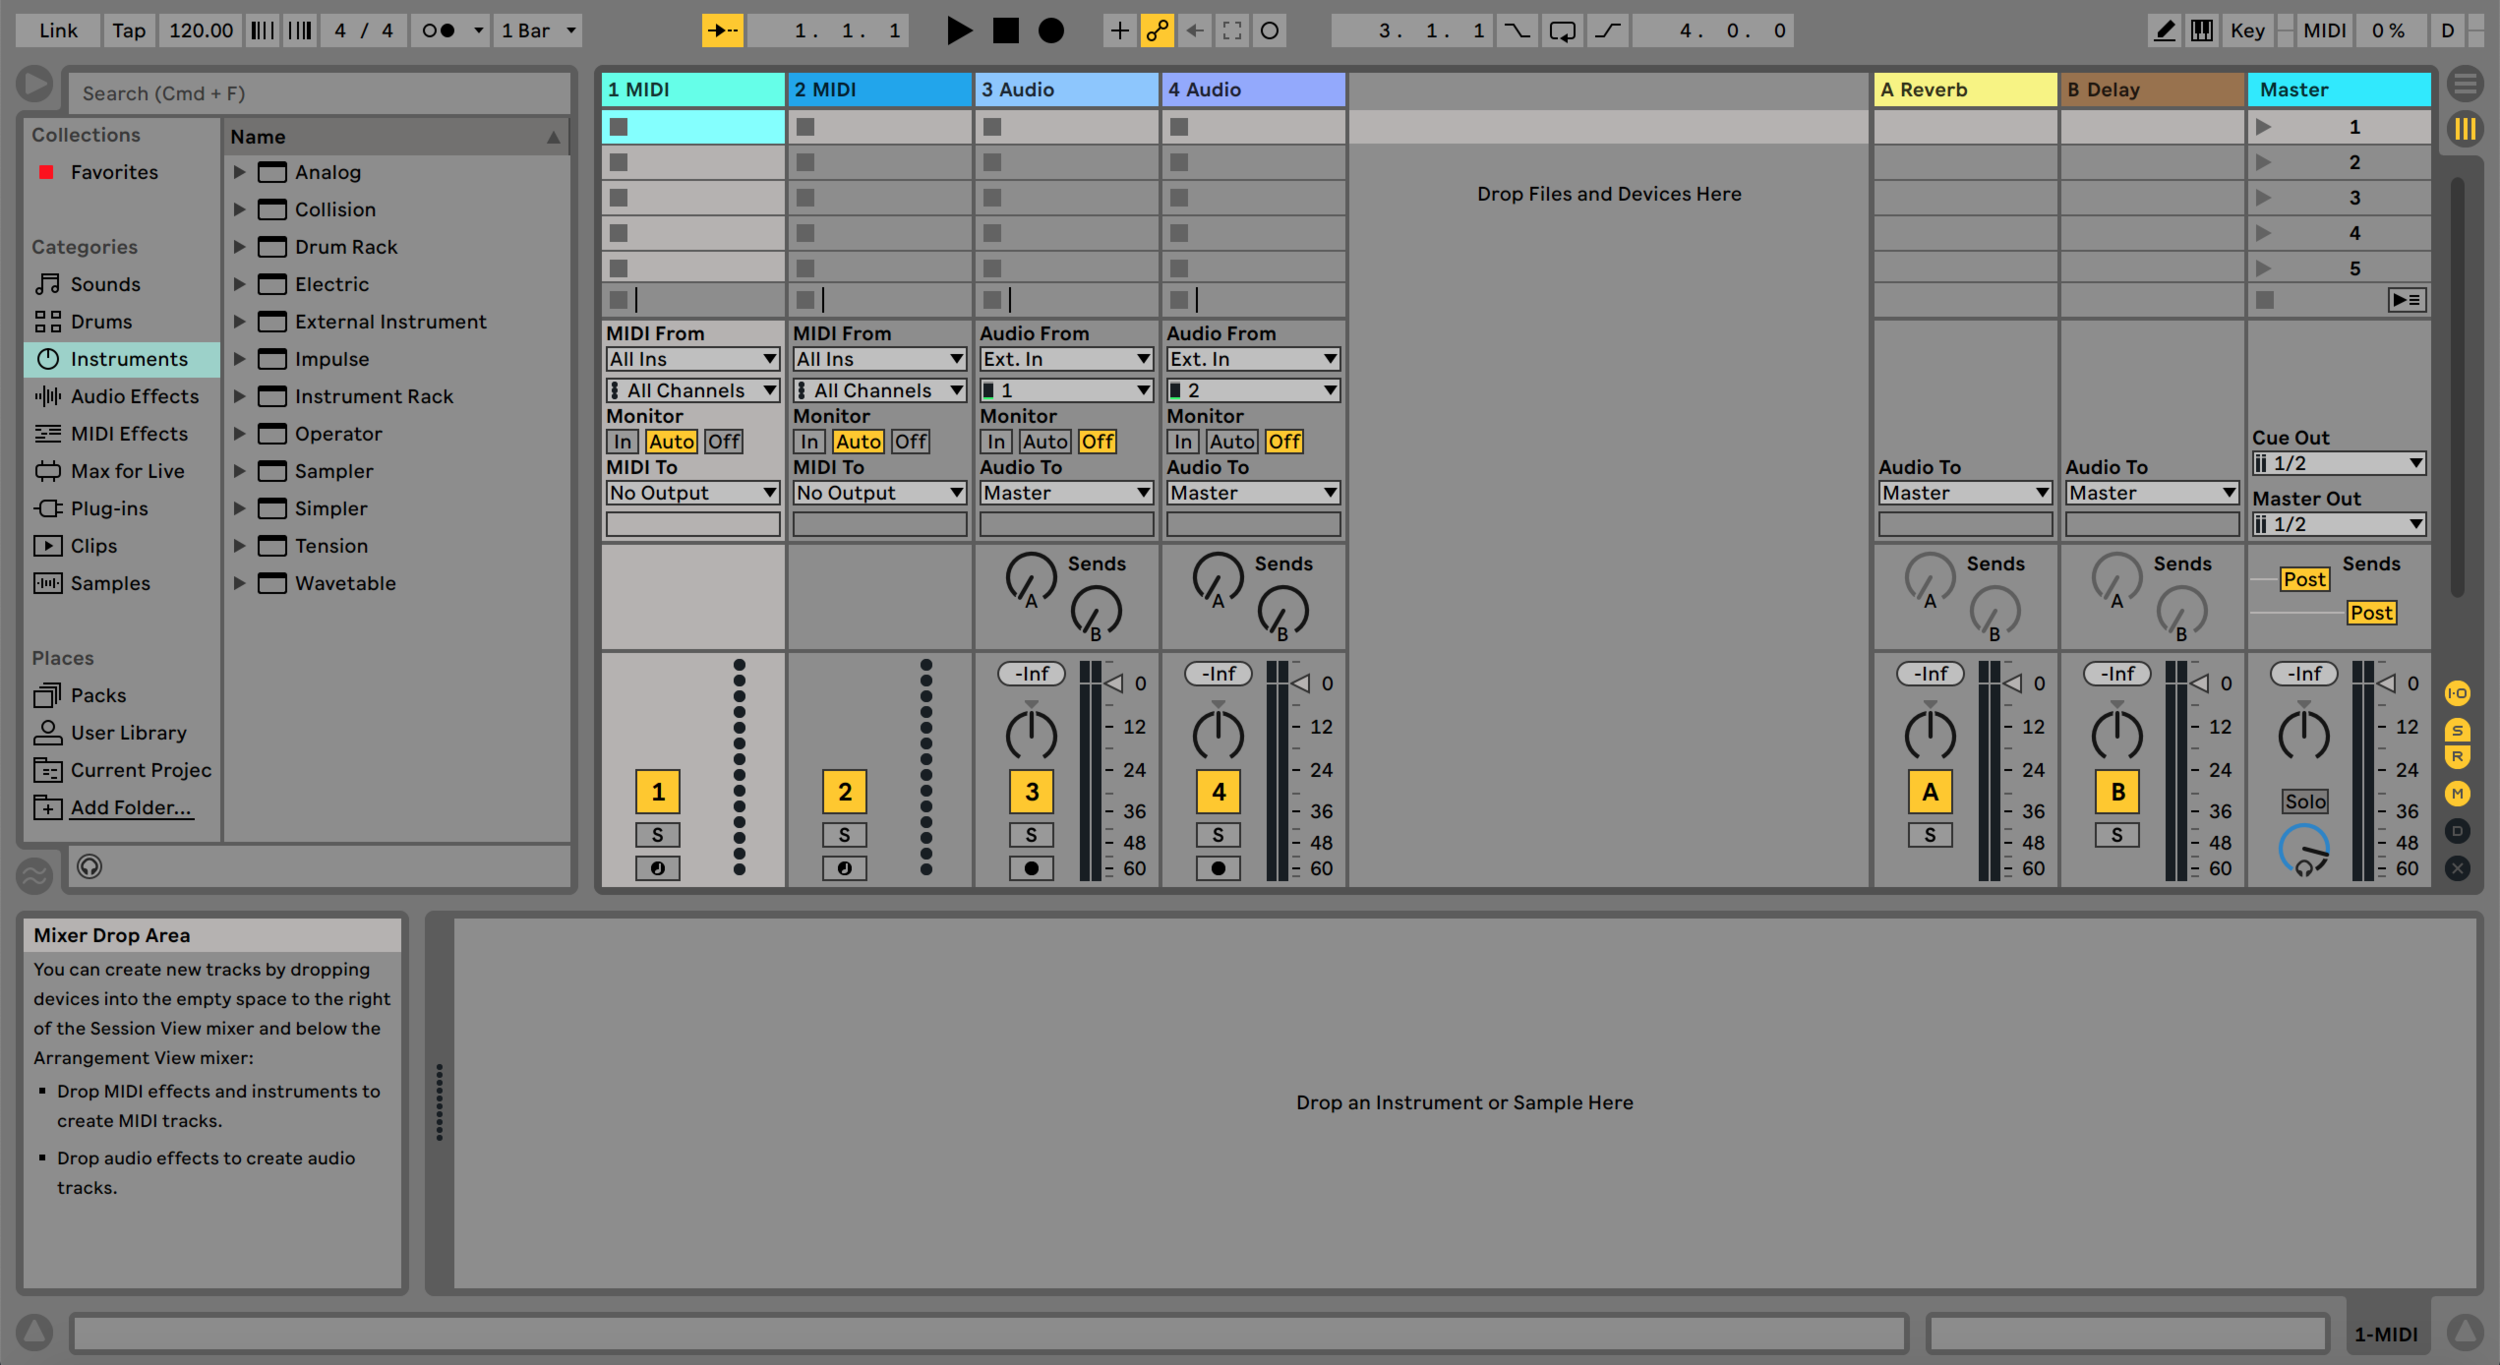 A typical Ableton screen in arrangement view.  Issues with screen clutter, contrast, eye strain and visual hierarchy were reported by users.